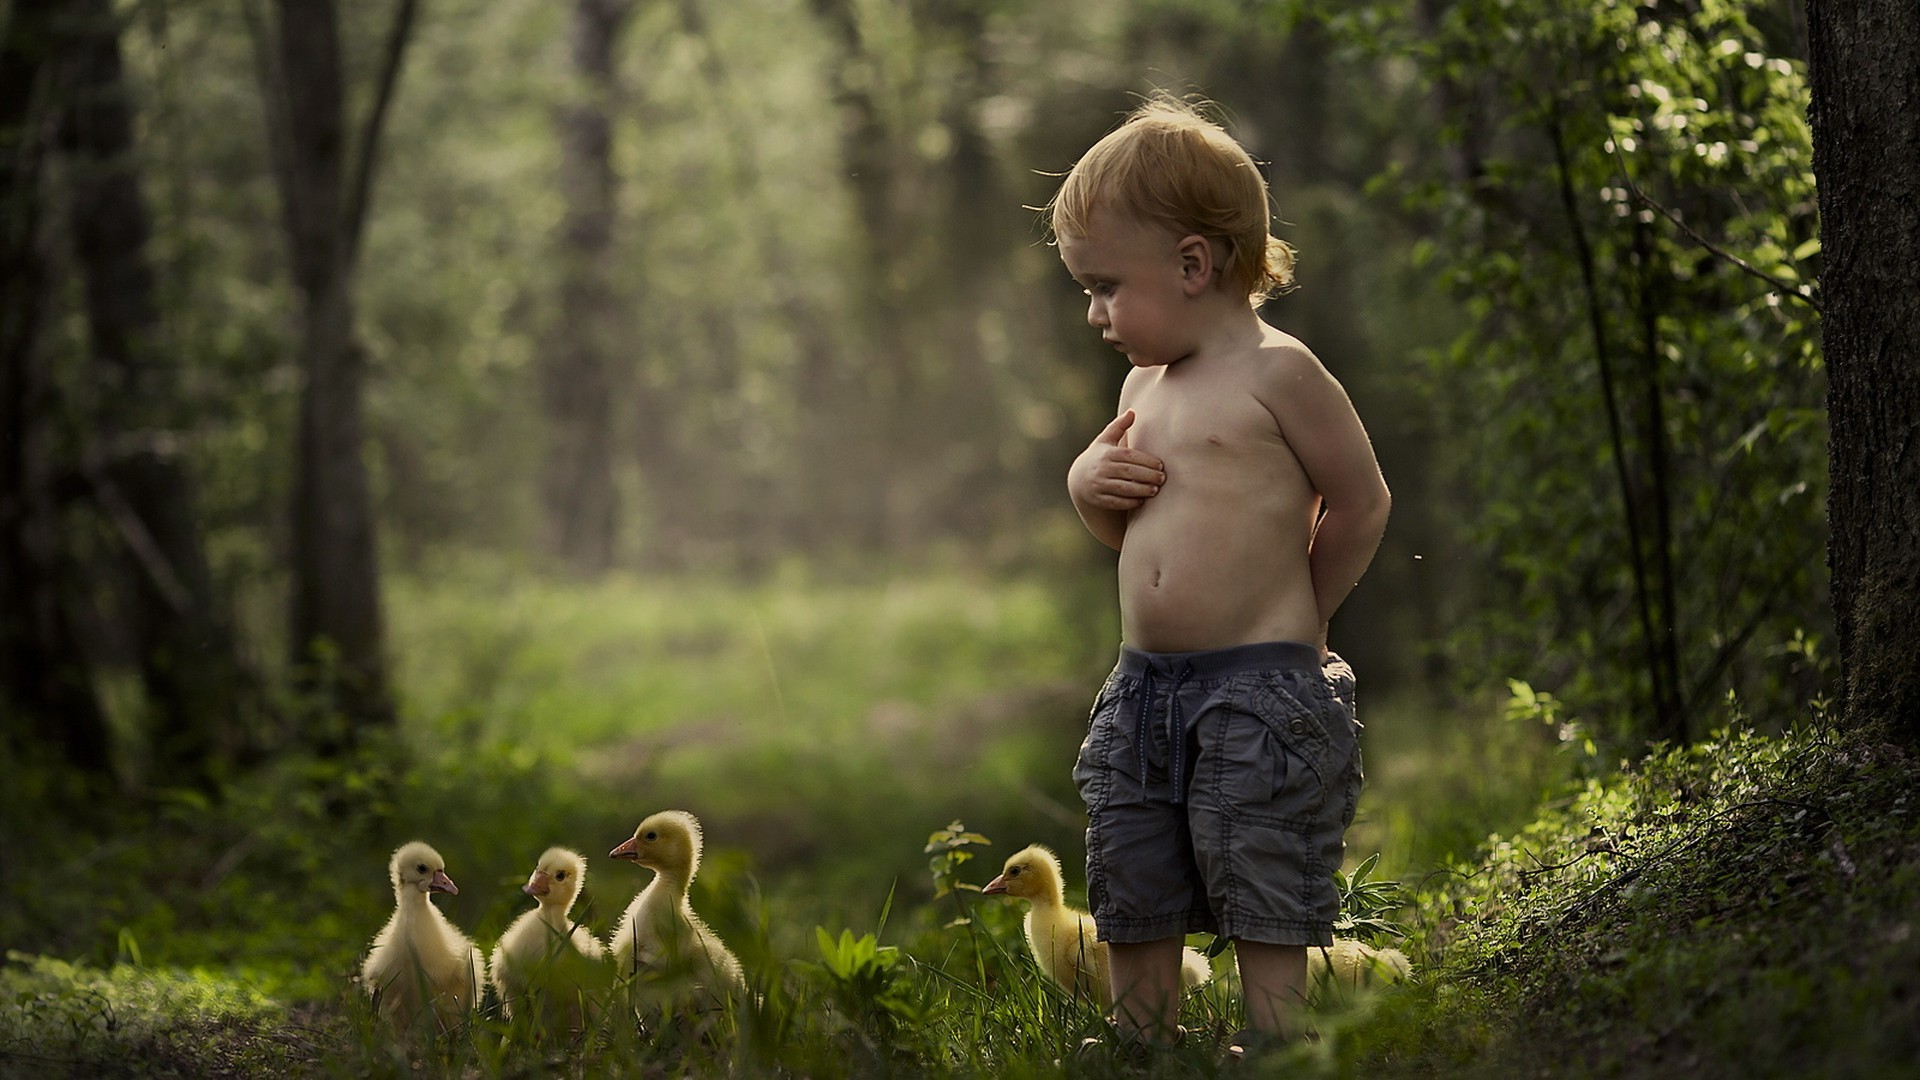 Cute Duck Wallpapers Children Geese Shirtless Baby Animals Birds Forest